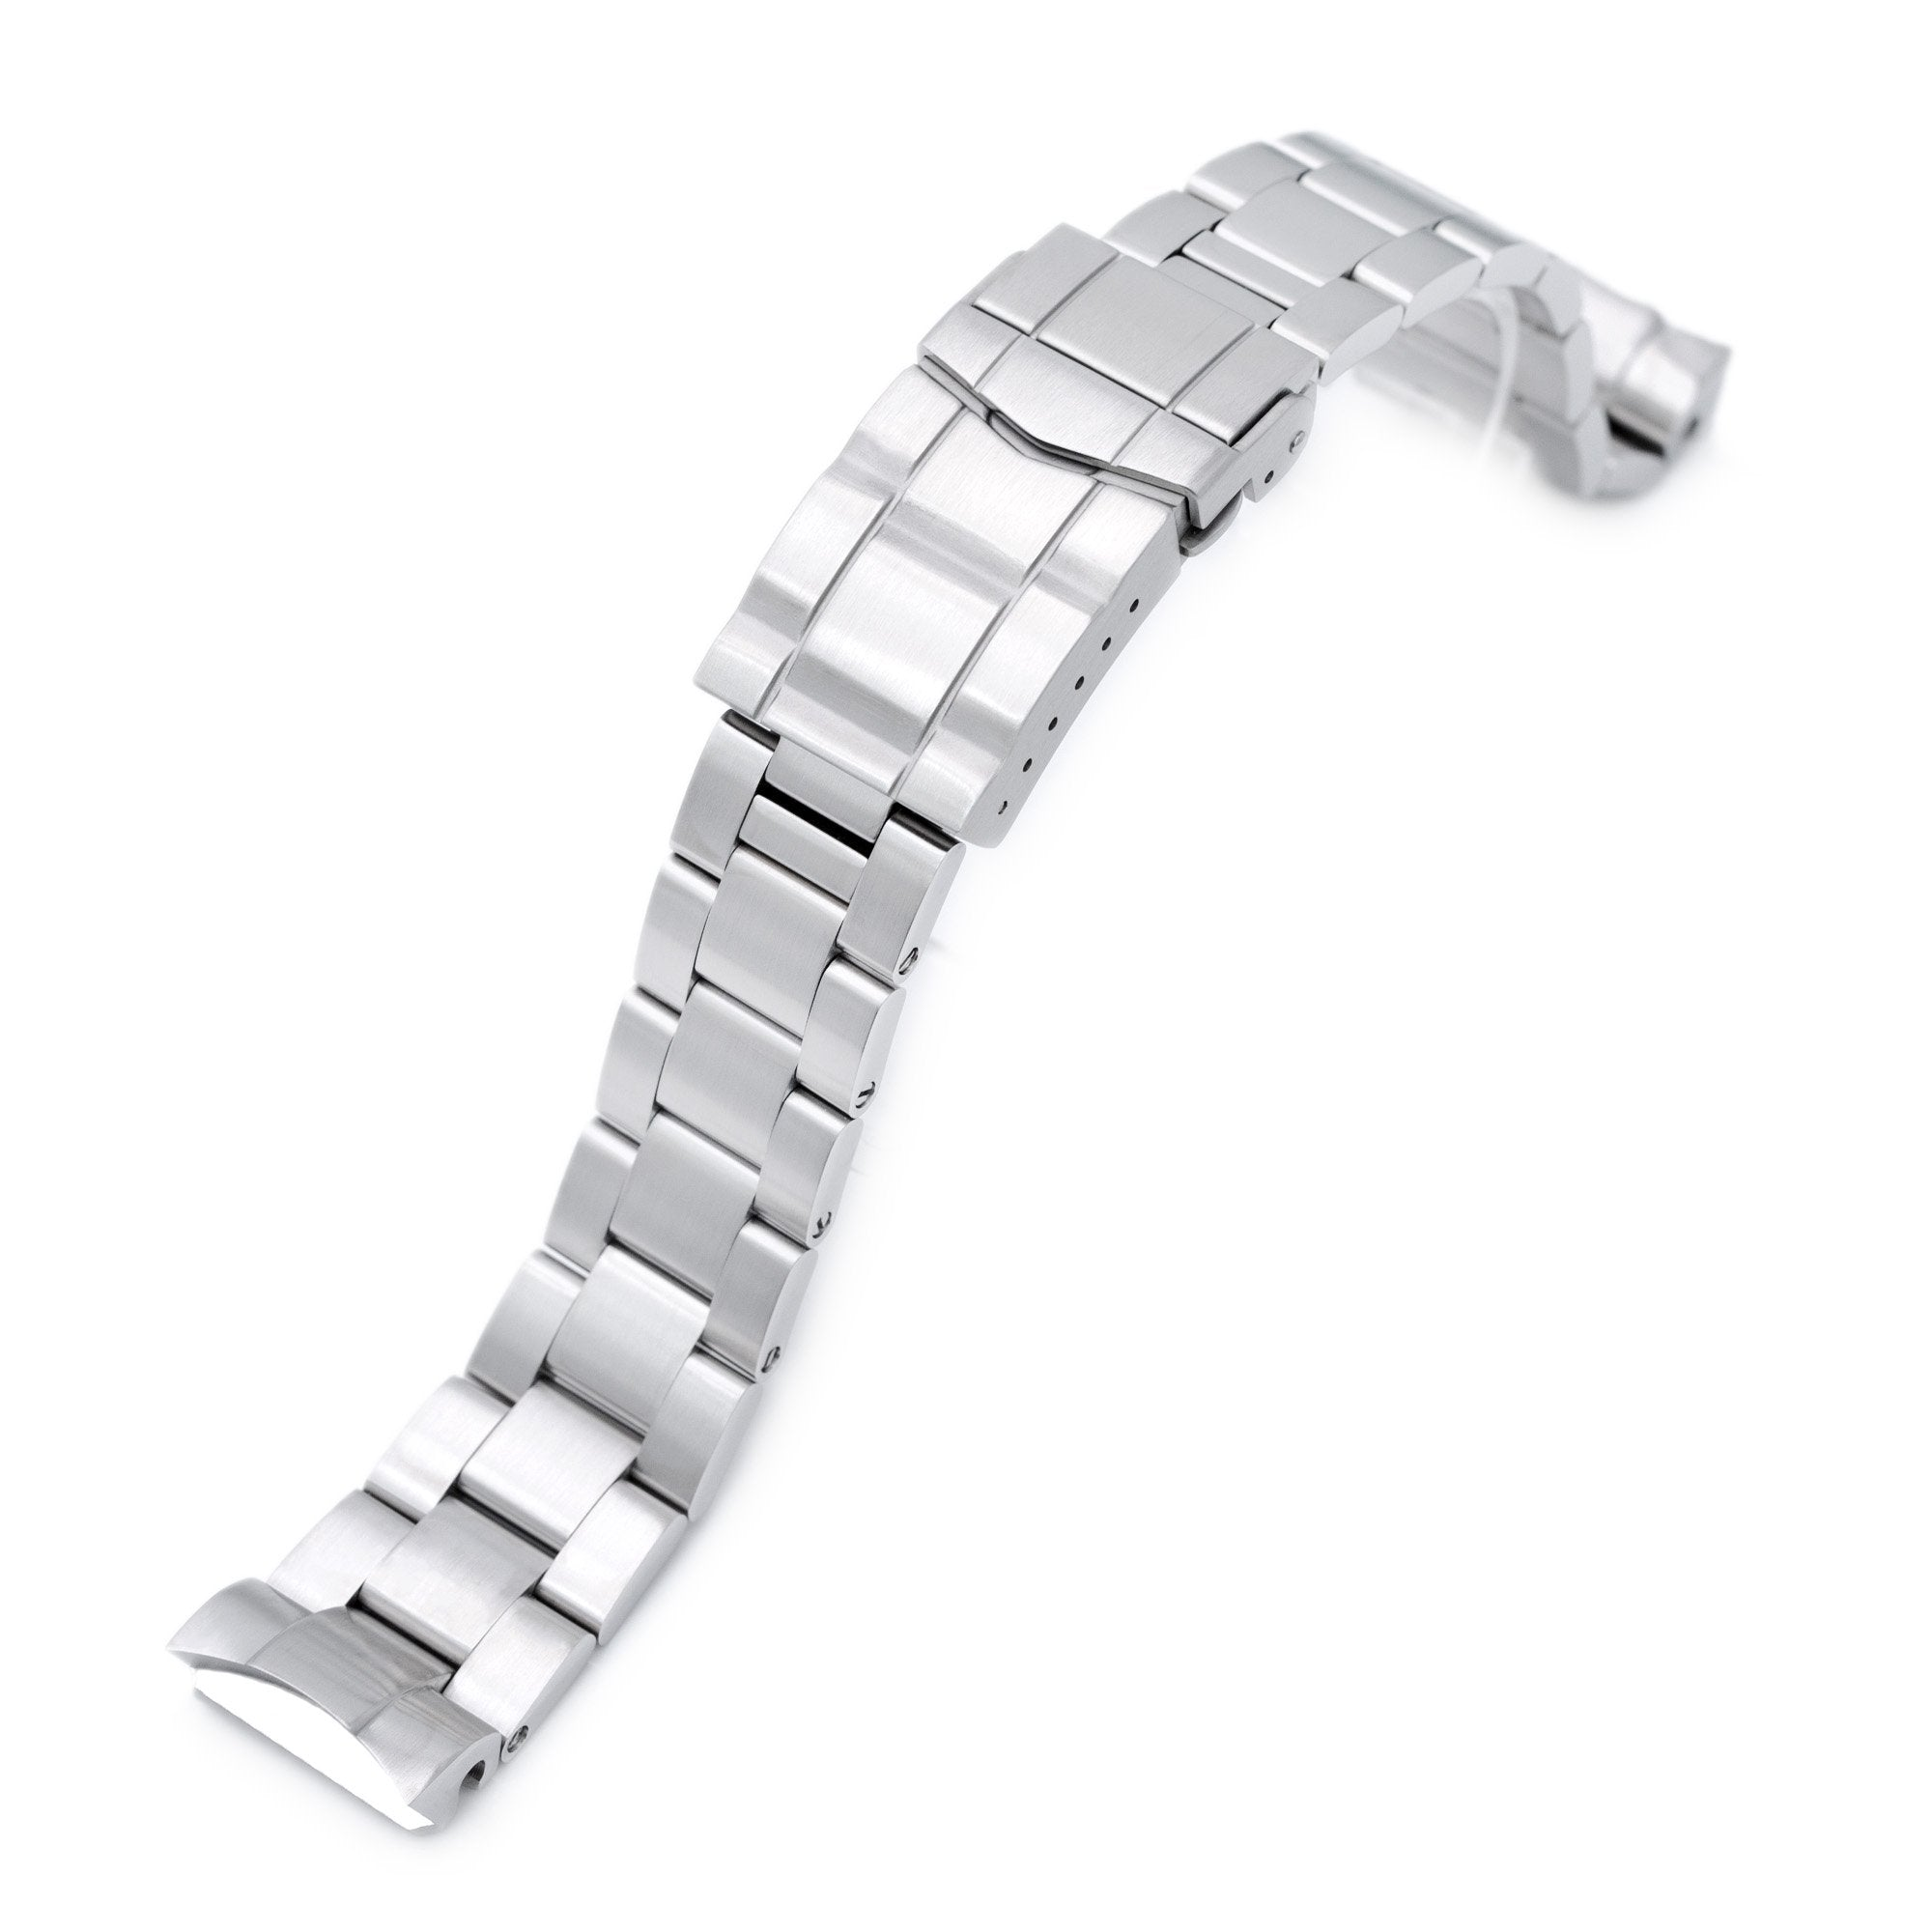 20mm Super-O Boyer watch band for Seiko MM300 Prospex Marinemaster SBDX001 SBDX017, Brushed, Solid SUB Clasp Strapcode Watch Bands